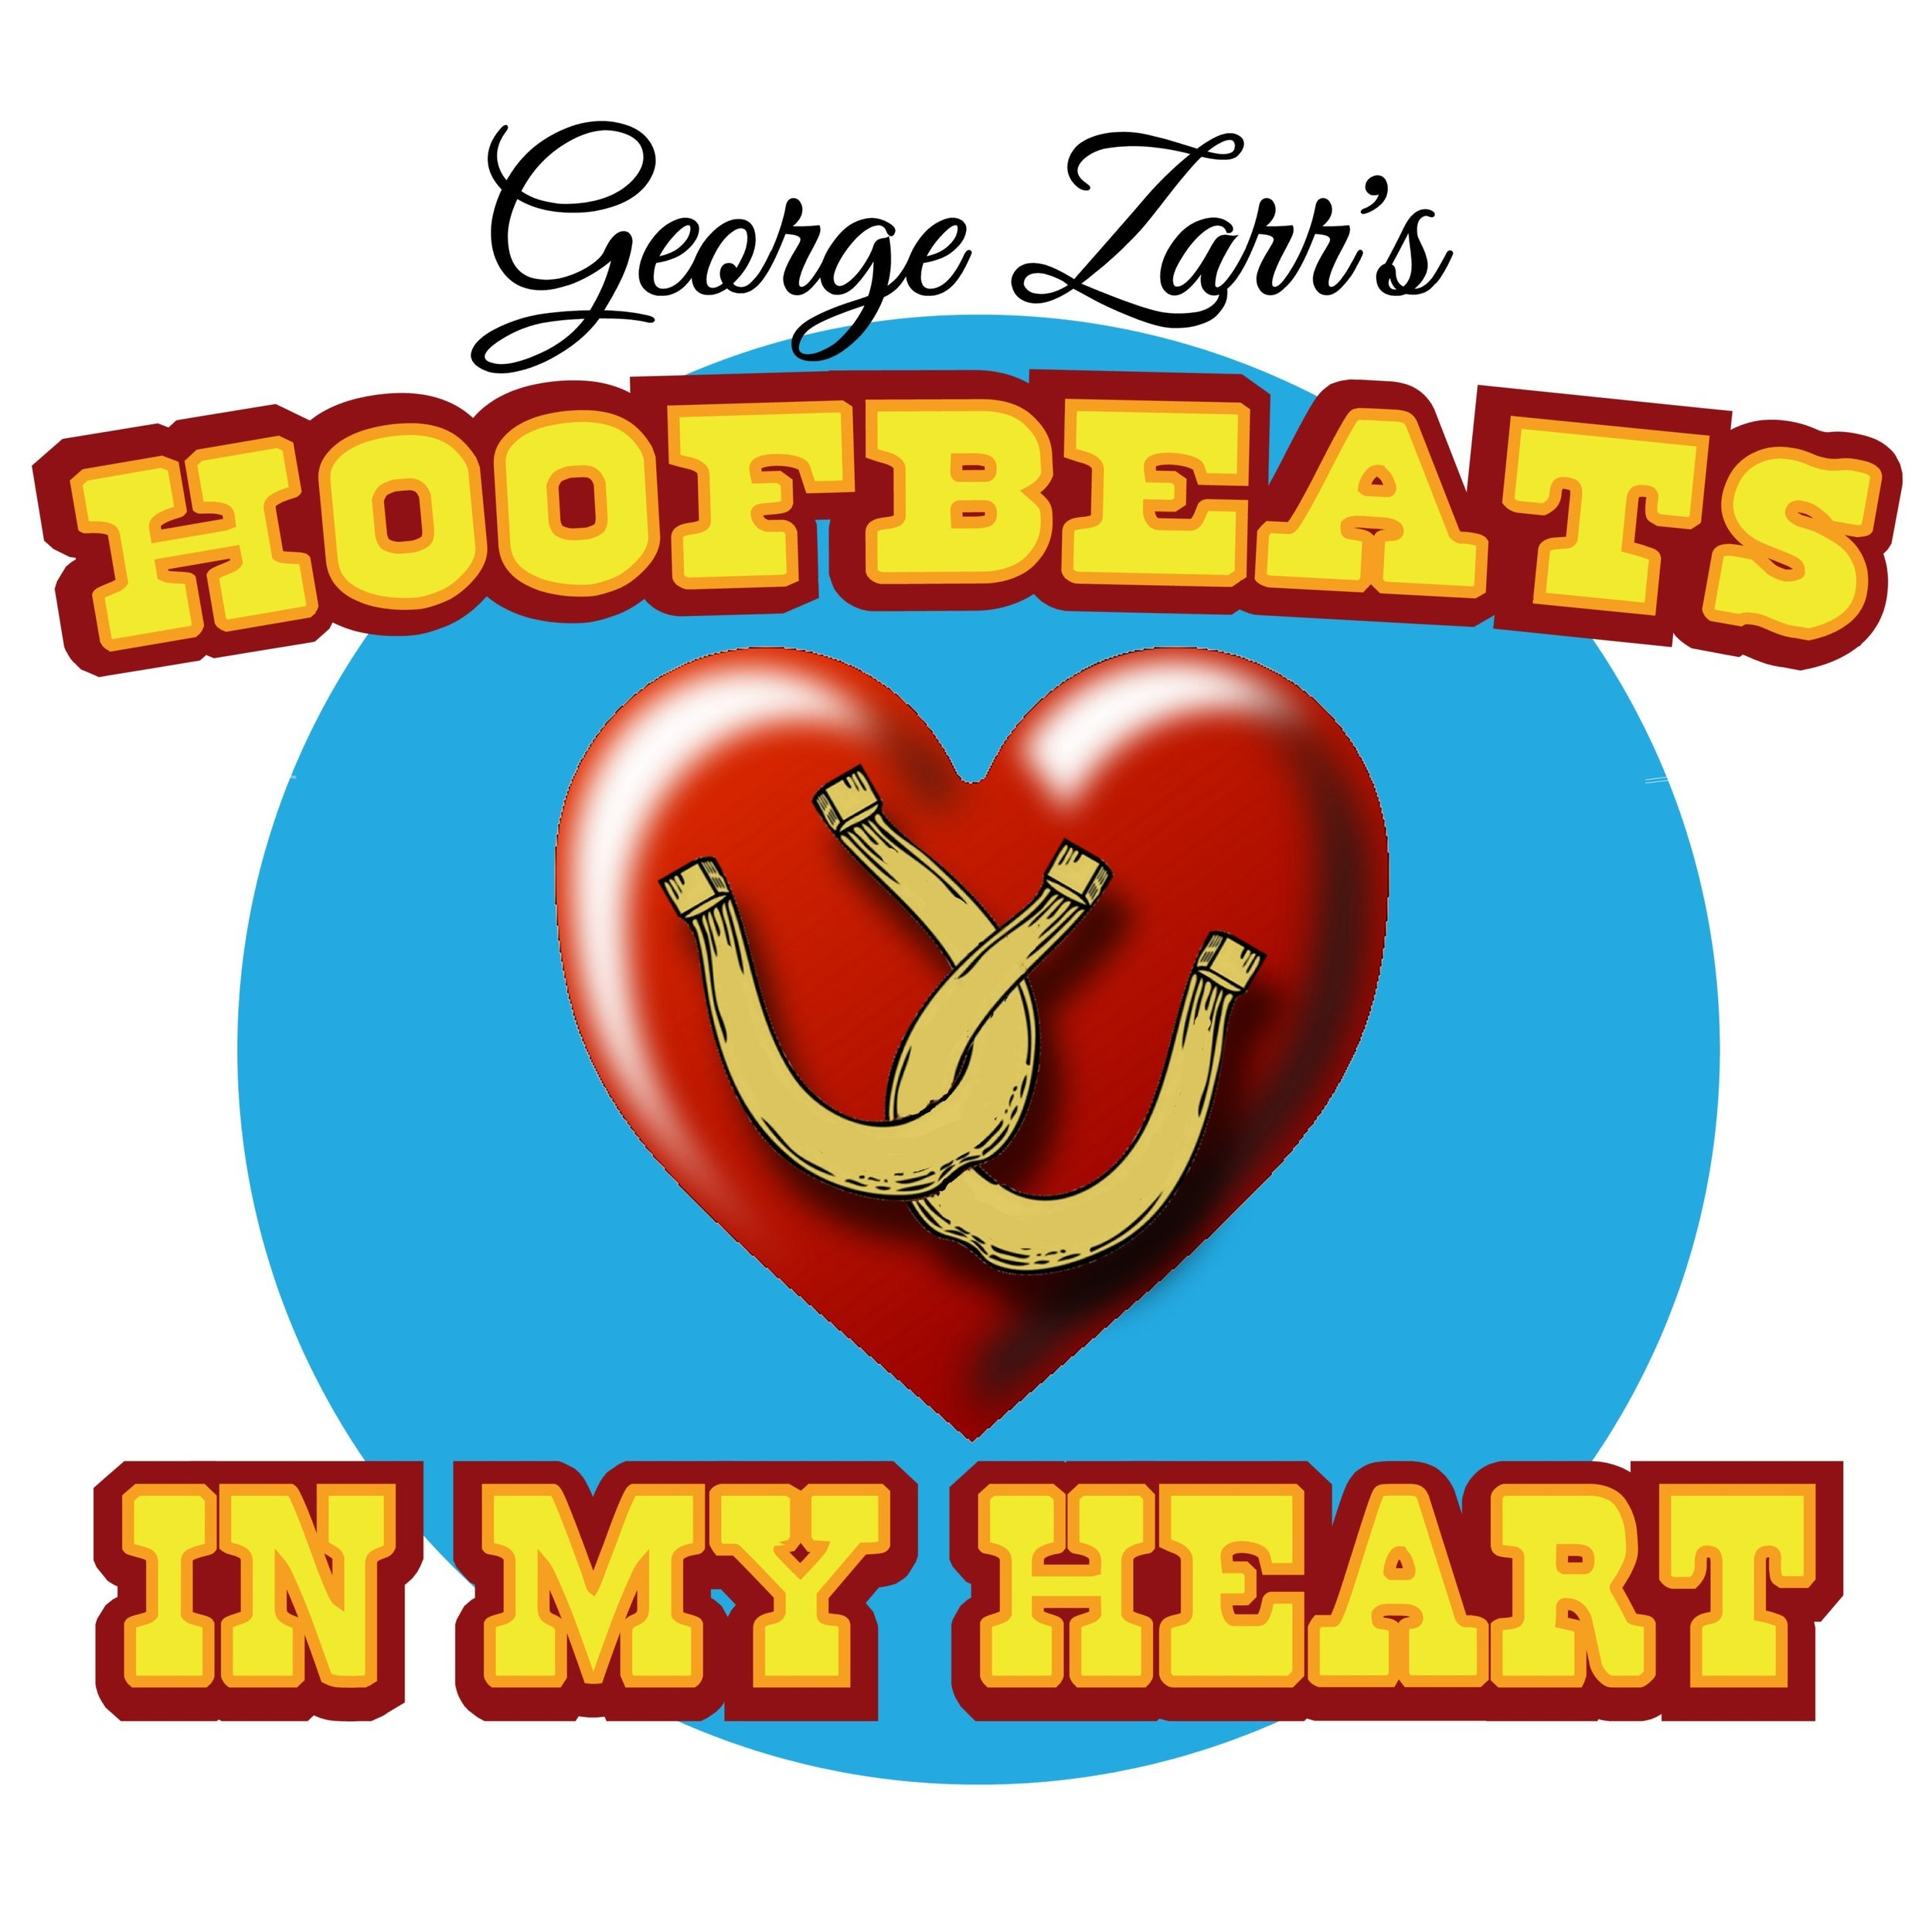 Hoofbeats logo 13 for iTunes.jpg